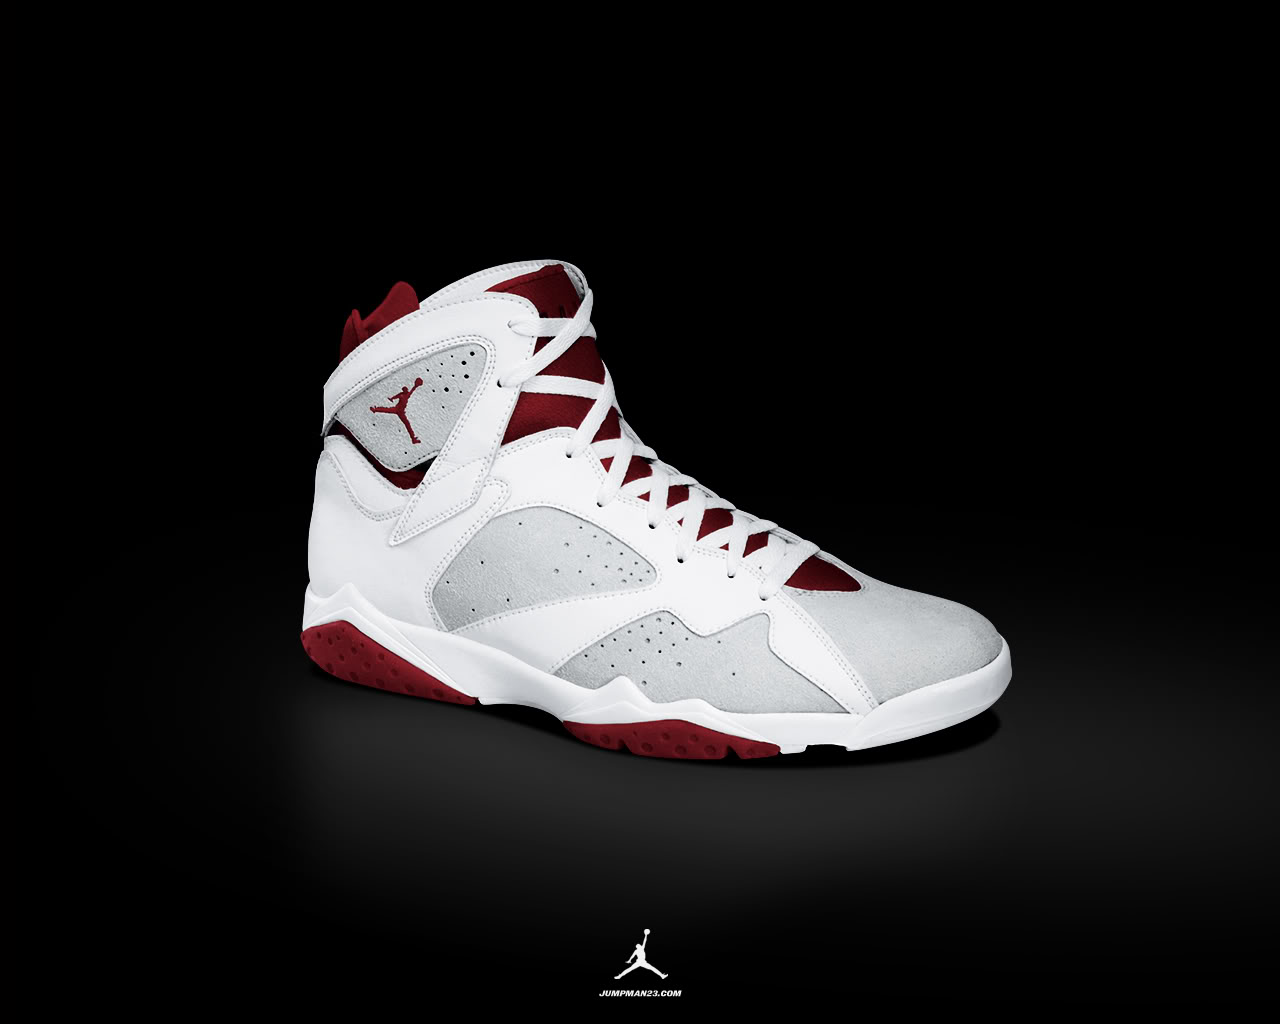 Jordan Shoes Wallpaper 30673